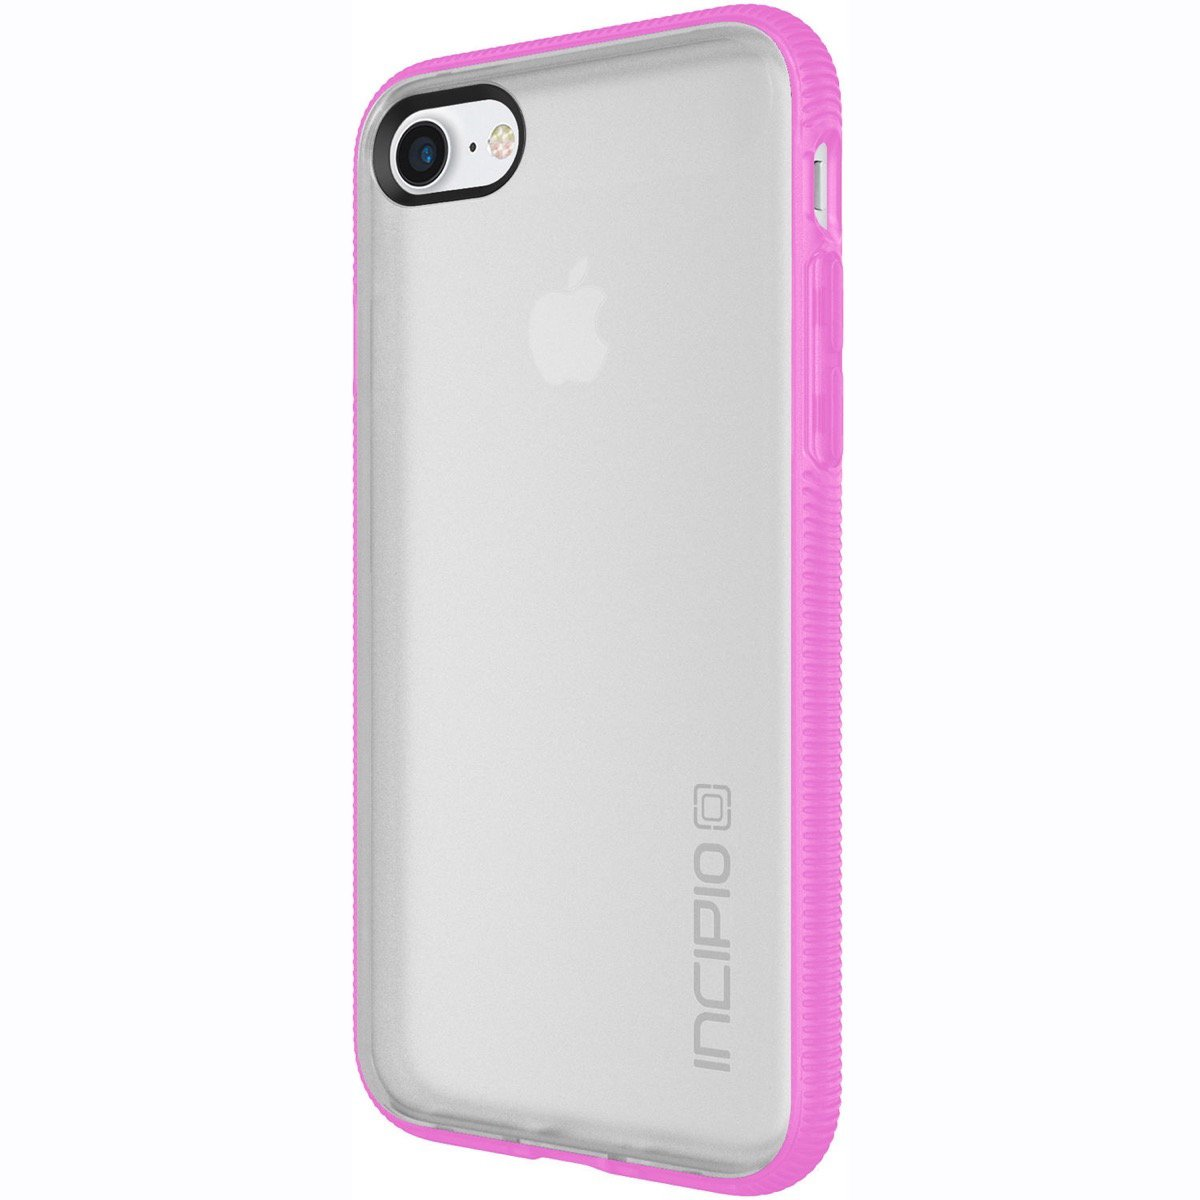 reputable site abc7e 8ae52 FUNDA INCIPIO IPHONE 7 ROSA/FROST | SEARS.COM.MX - Me entiende!